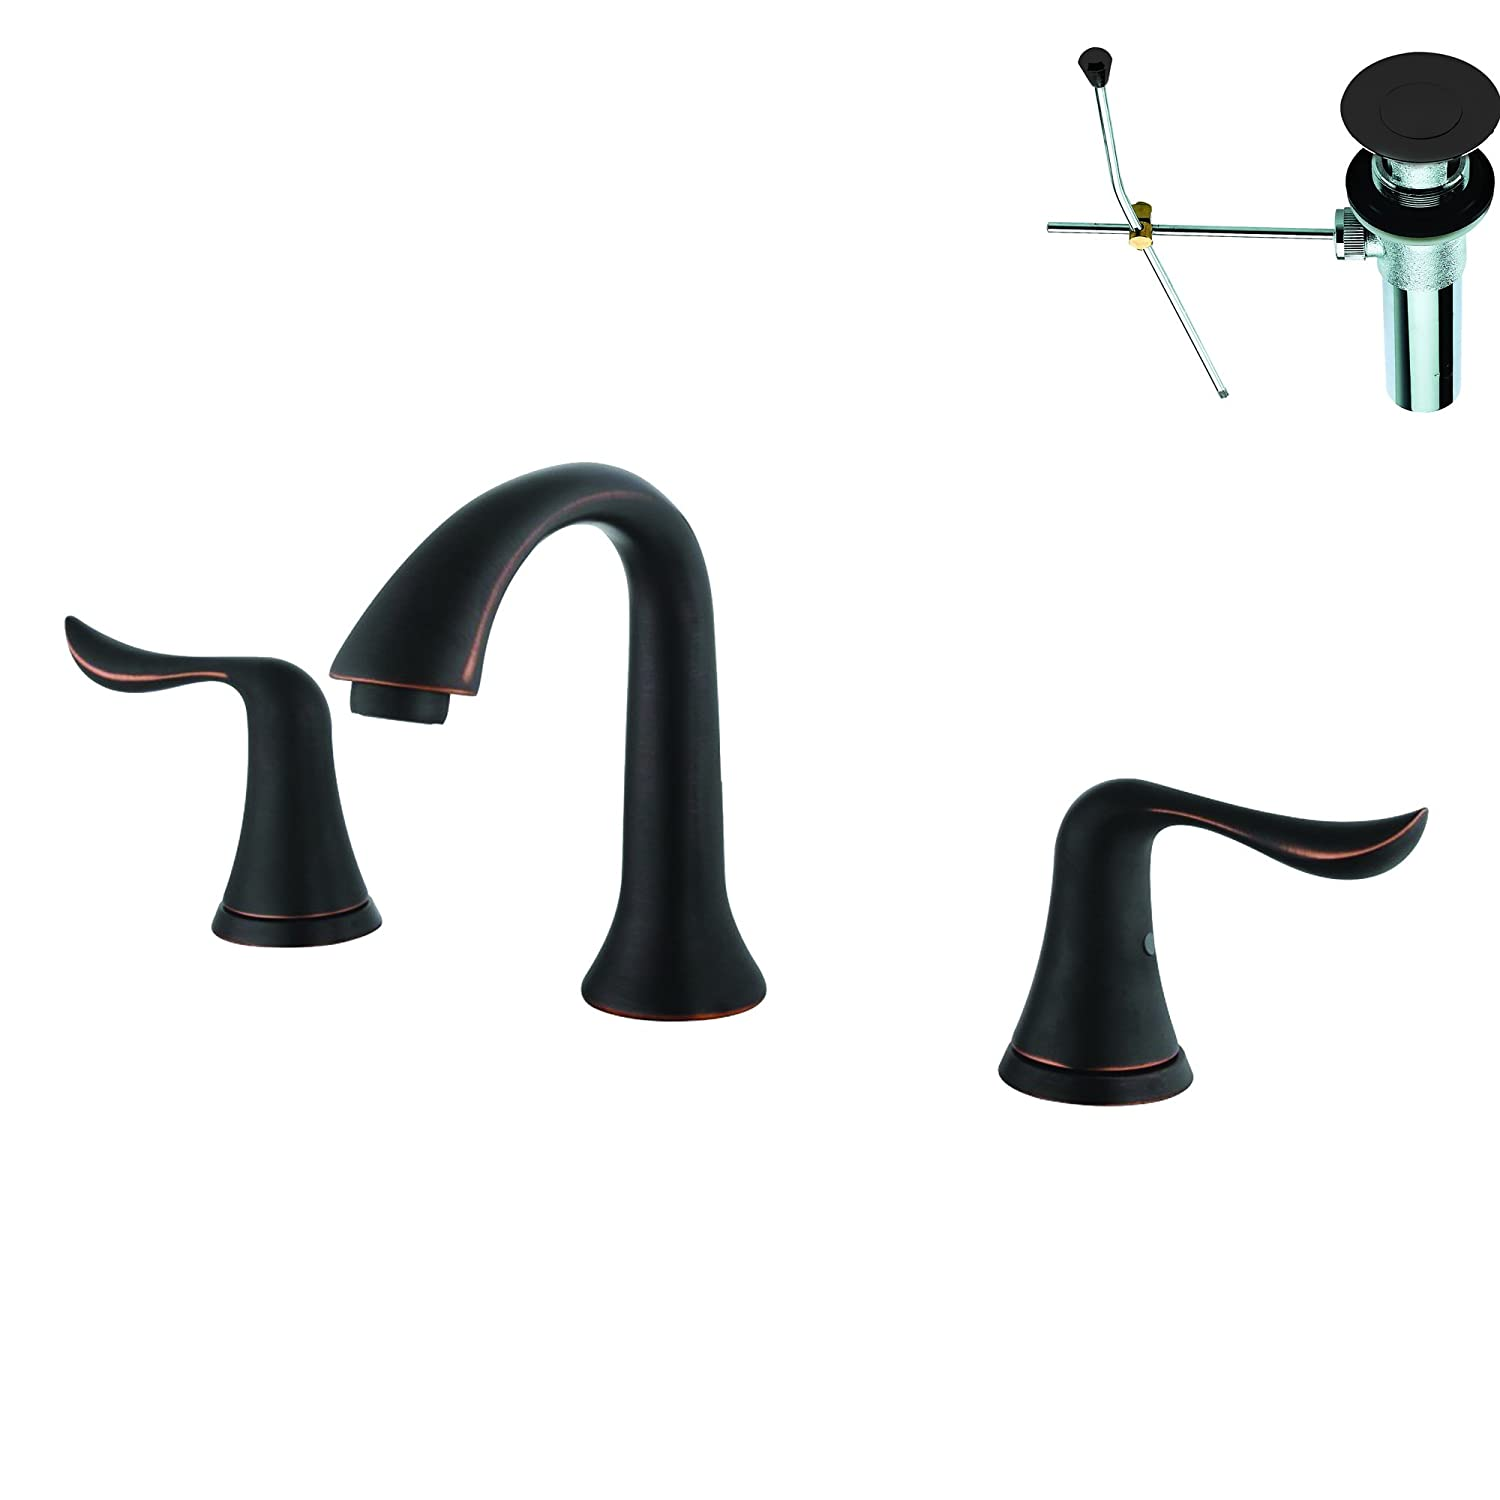 Yosemite home decor double handle widespread faucet with pop up drain - Yosemite Home Decor Yph3208vf Orbwd Two Handle Widespread Lavatory Faucet Oil Rubbed Bronze Finish